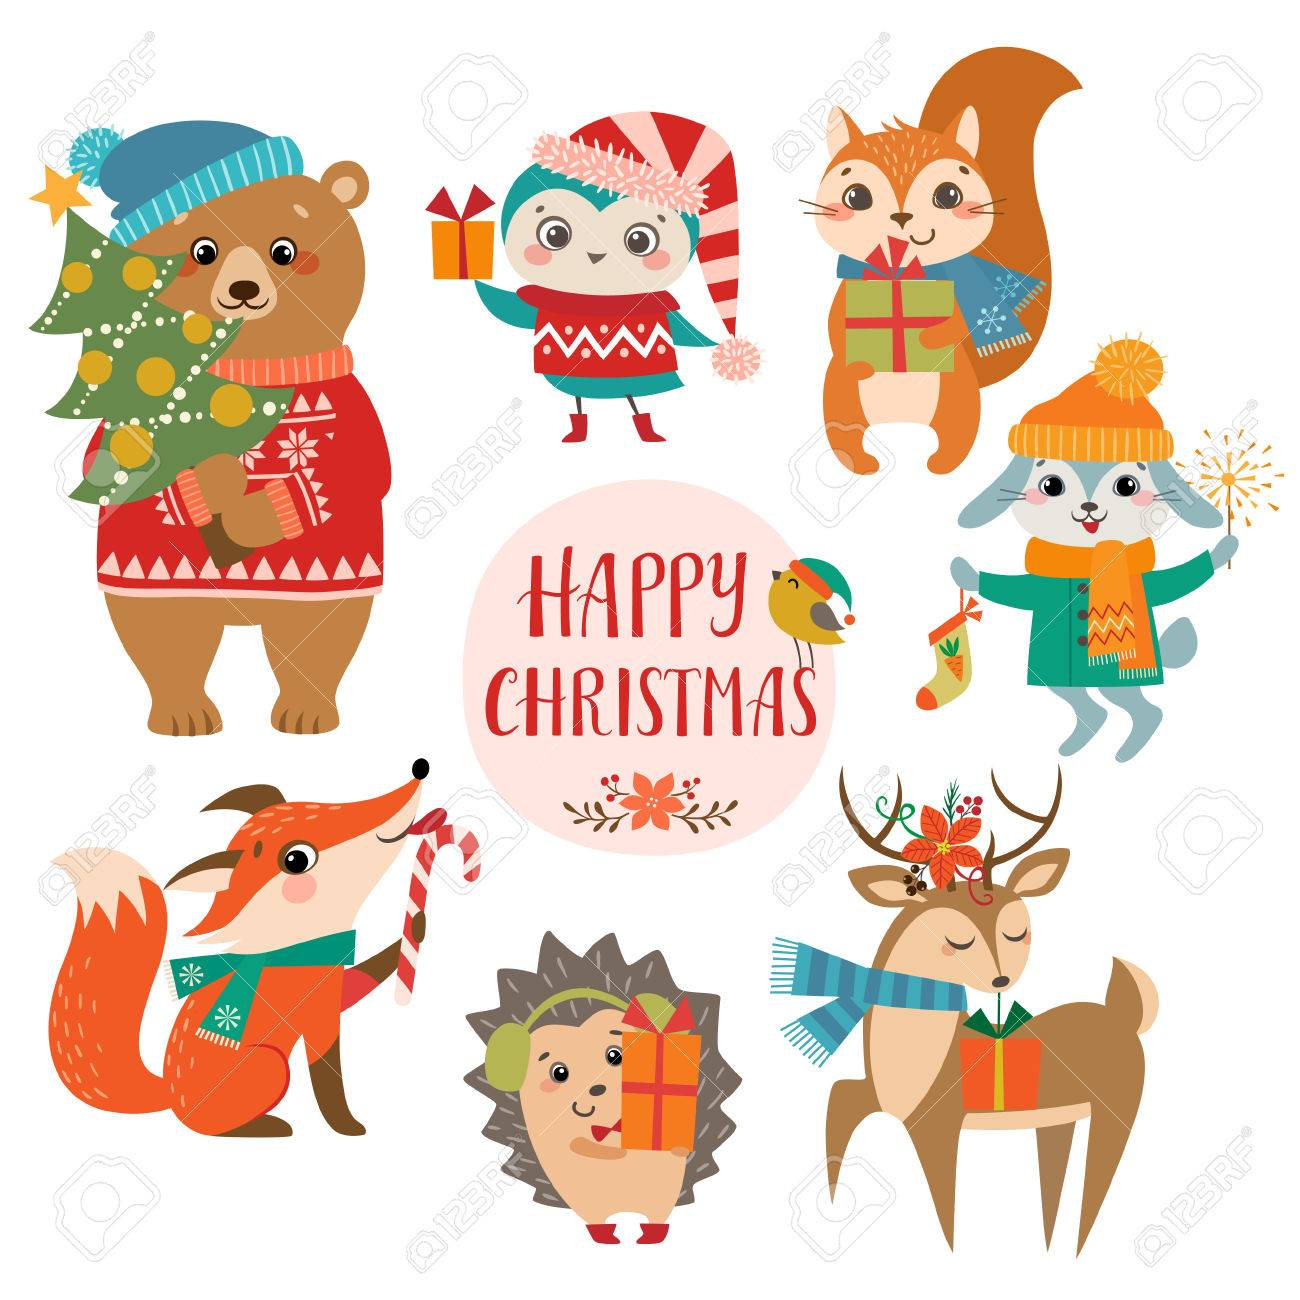 Set of cute forest animals with Christmas presents. - 67957498